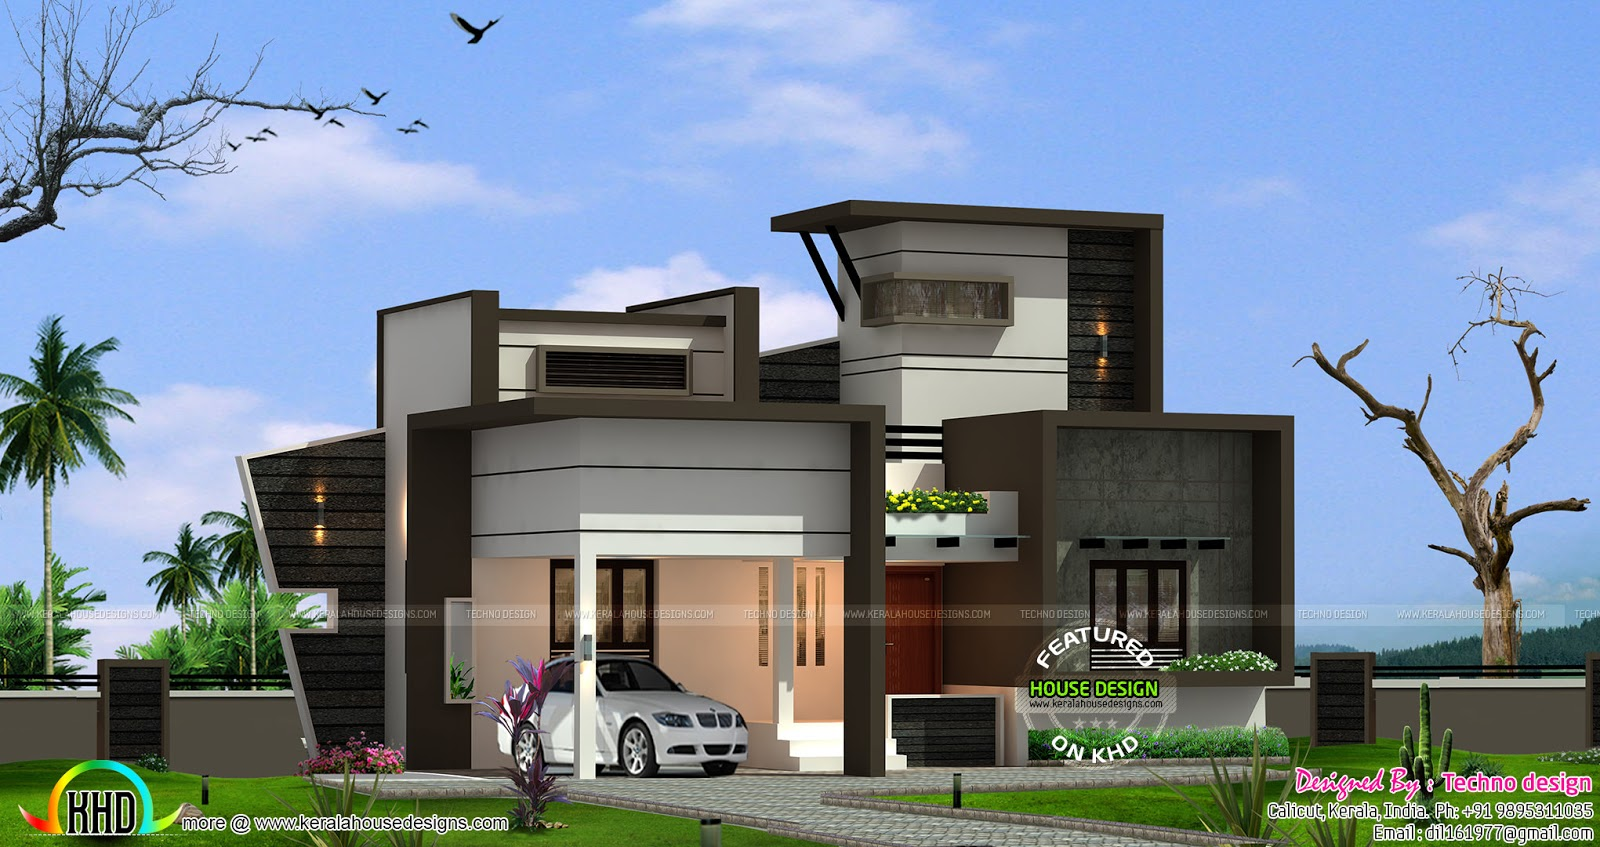 April 2016 kerala home design and floor plans for House pics and plans